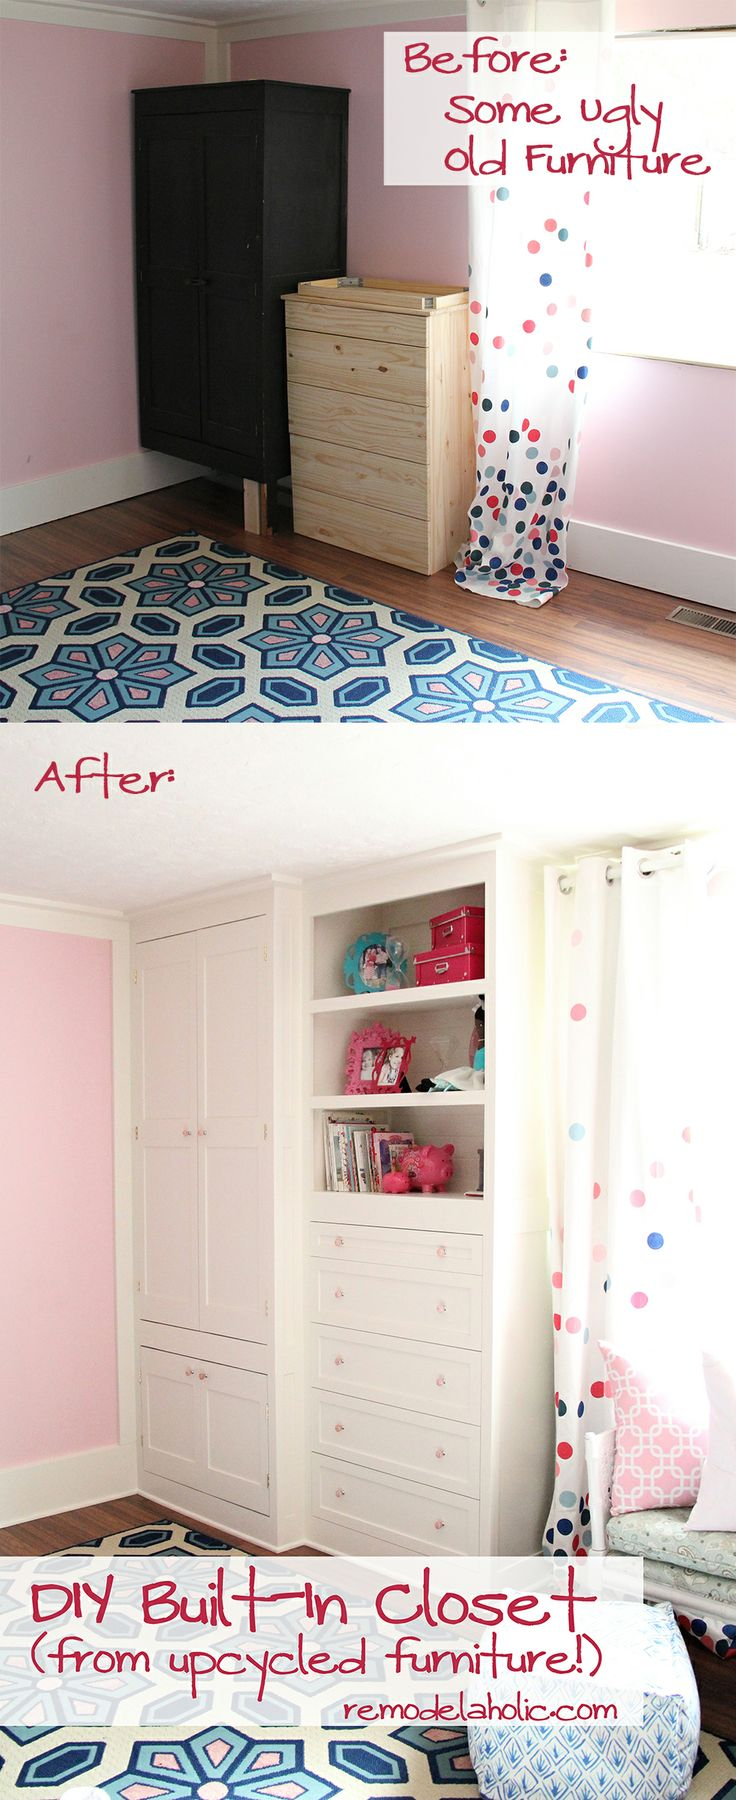 Old Ikea Products remodelaholic | built-in closet hack